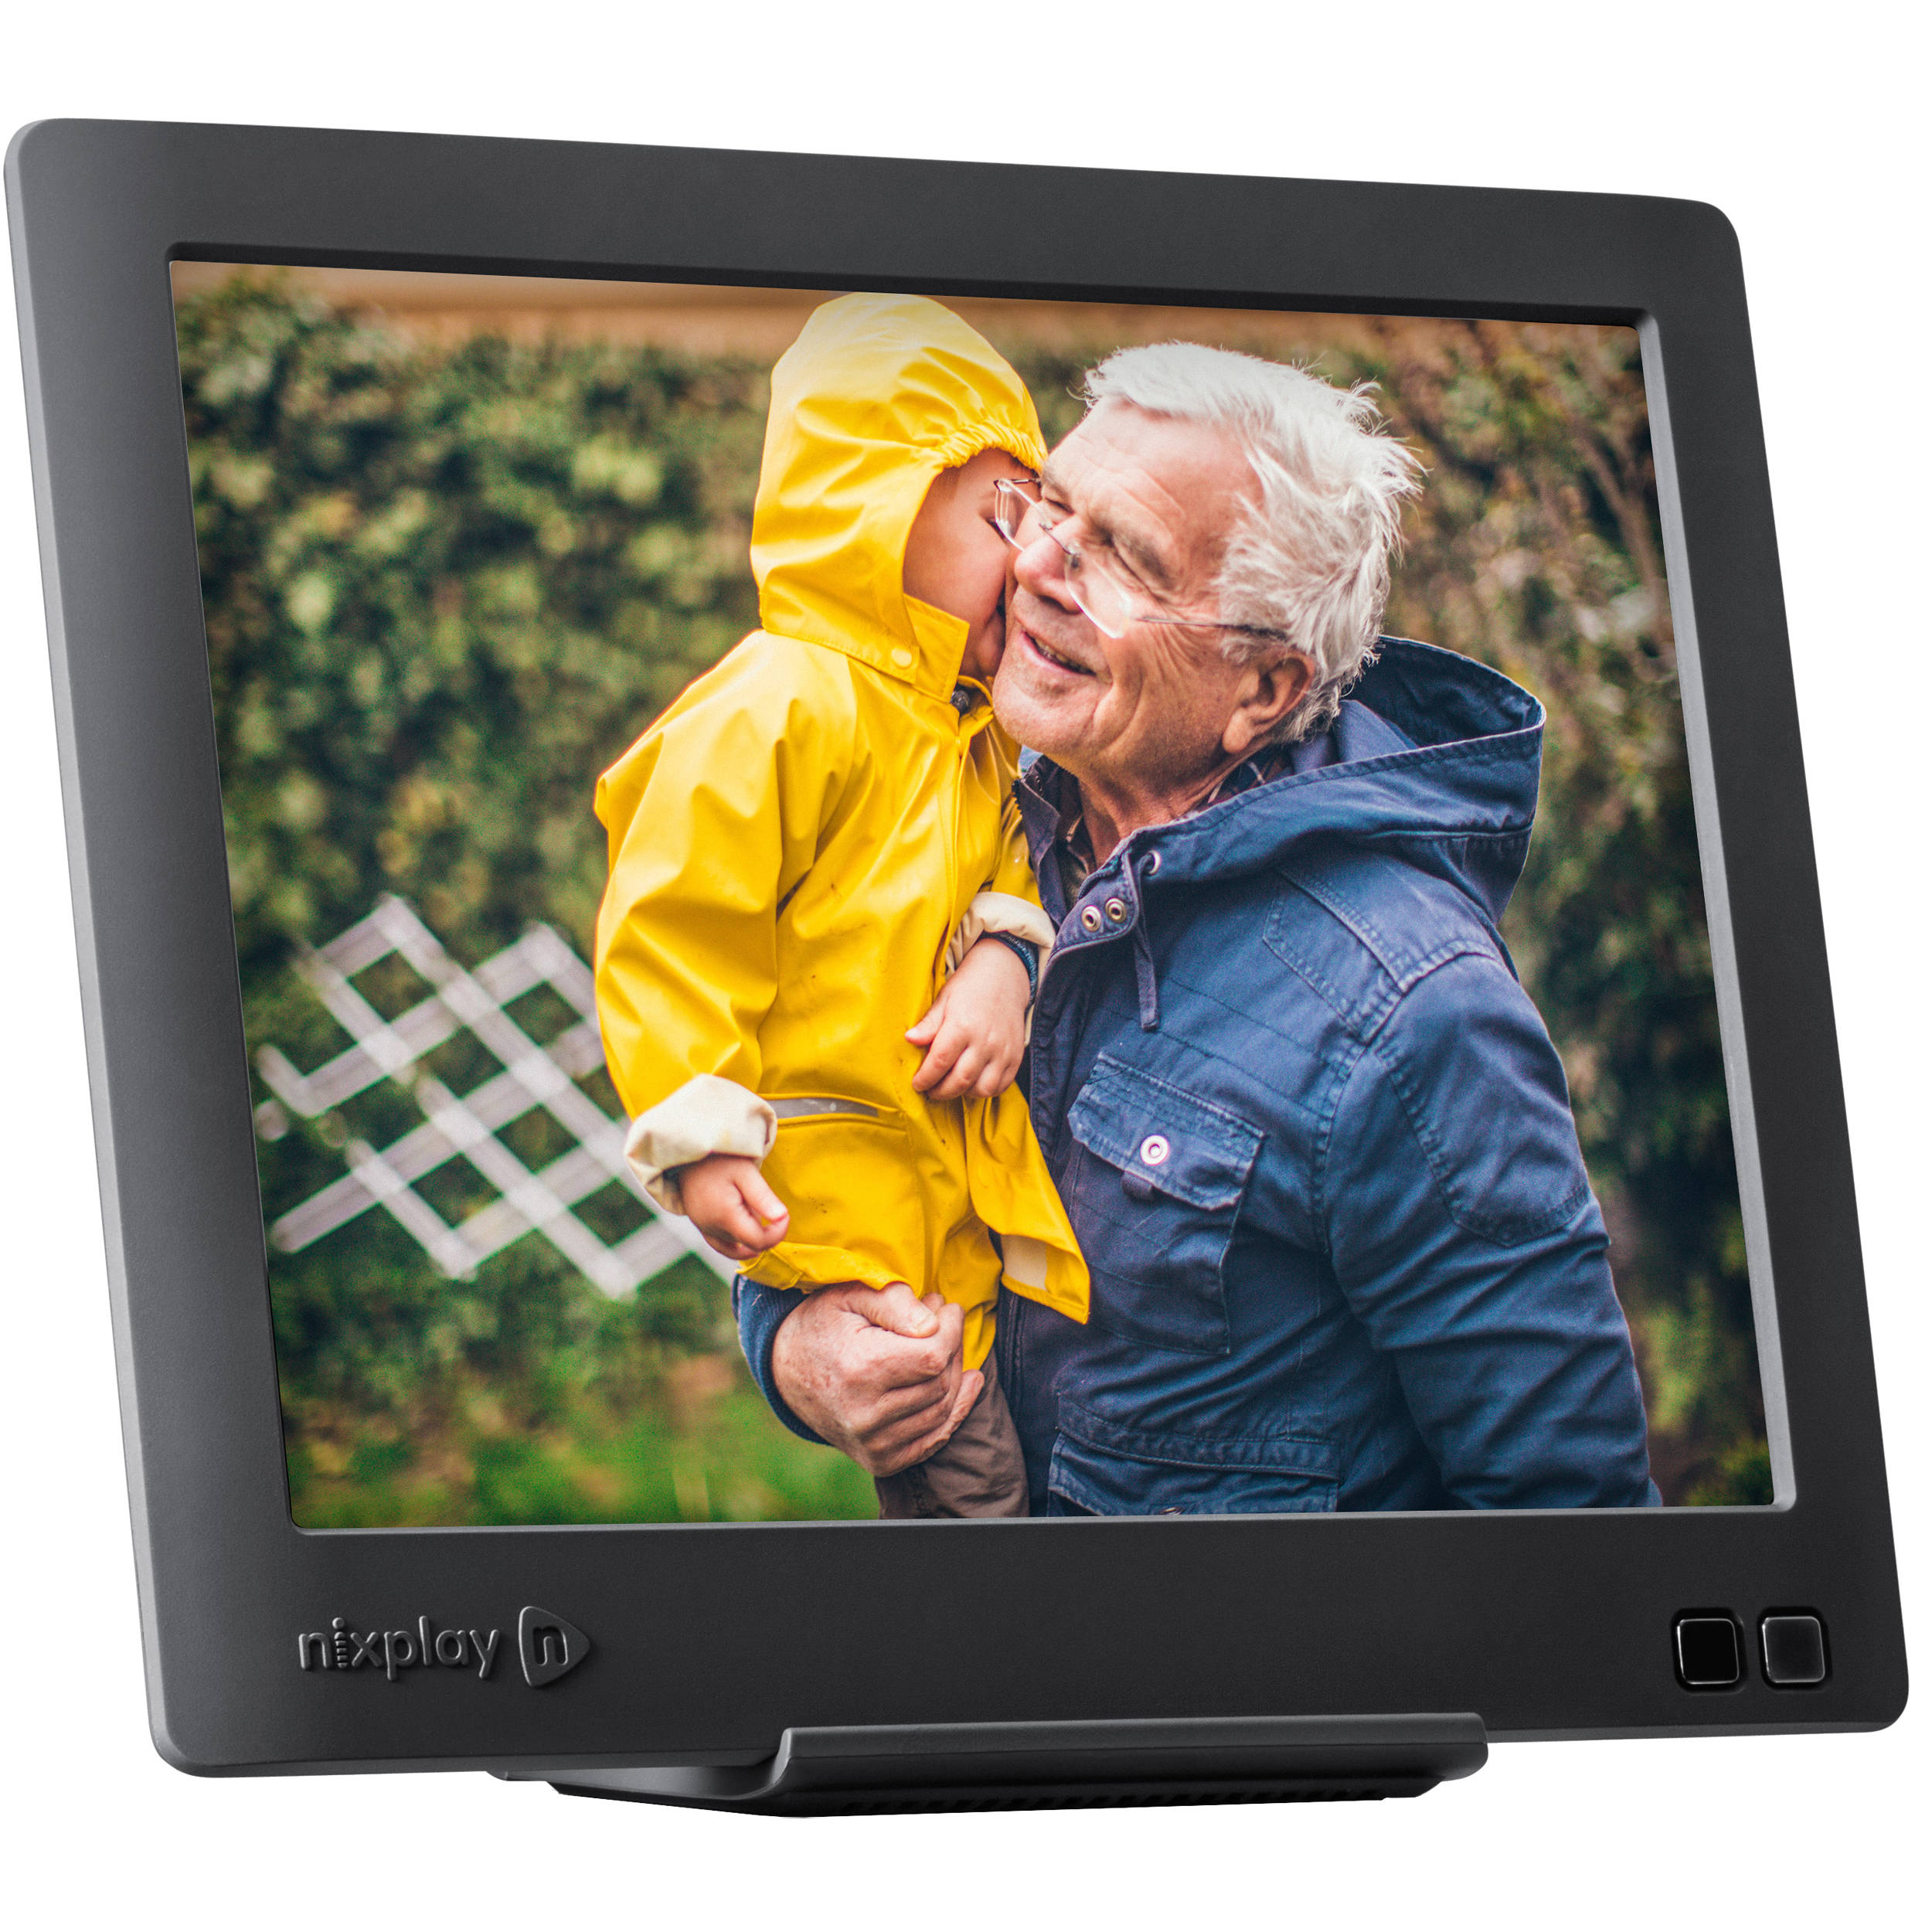 nixplay nixplay edge cloud wifi digital picture frame 8